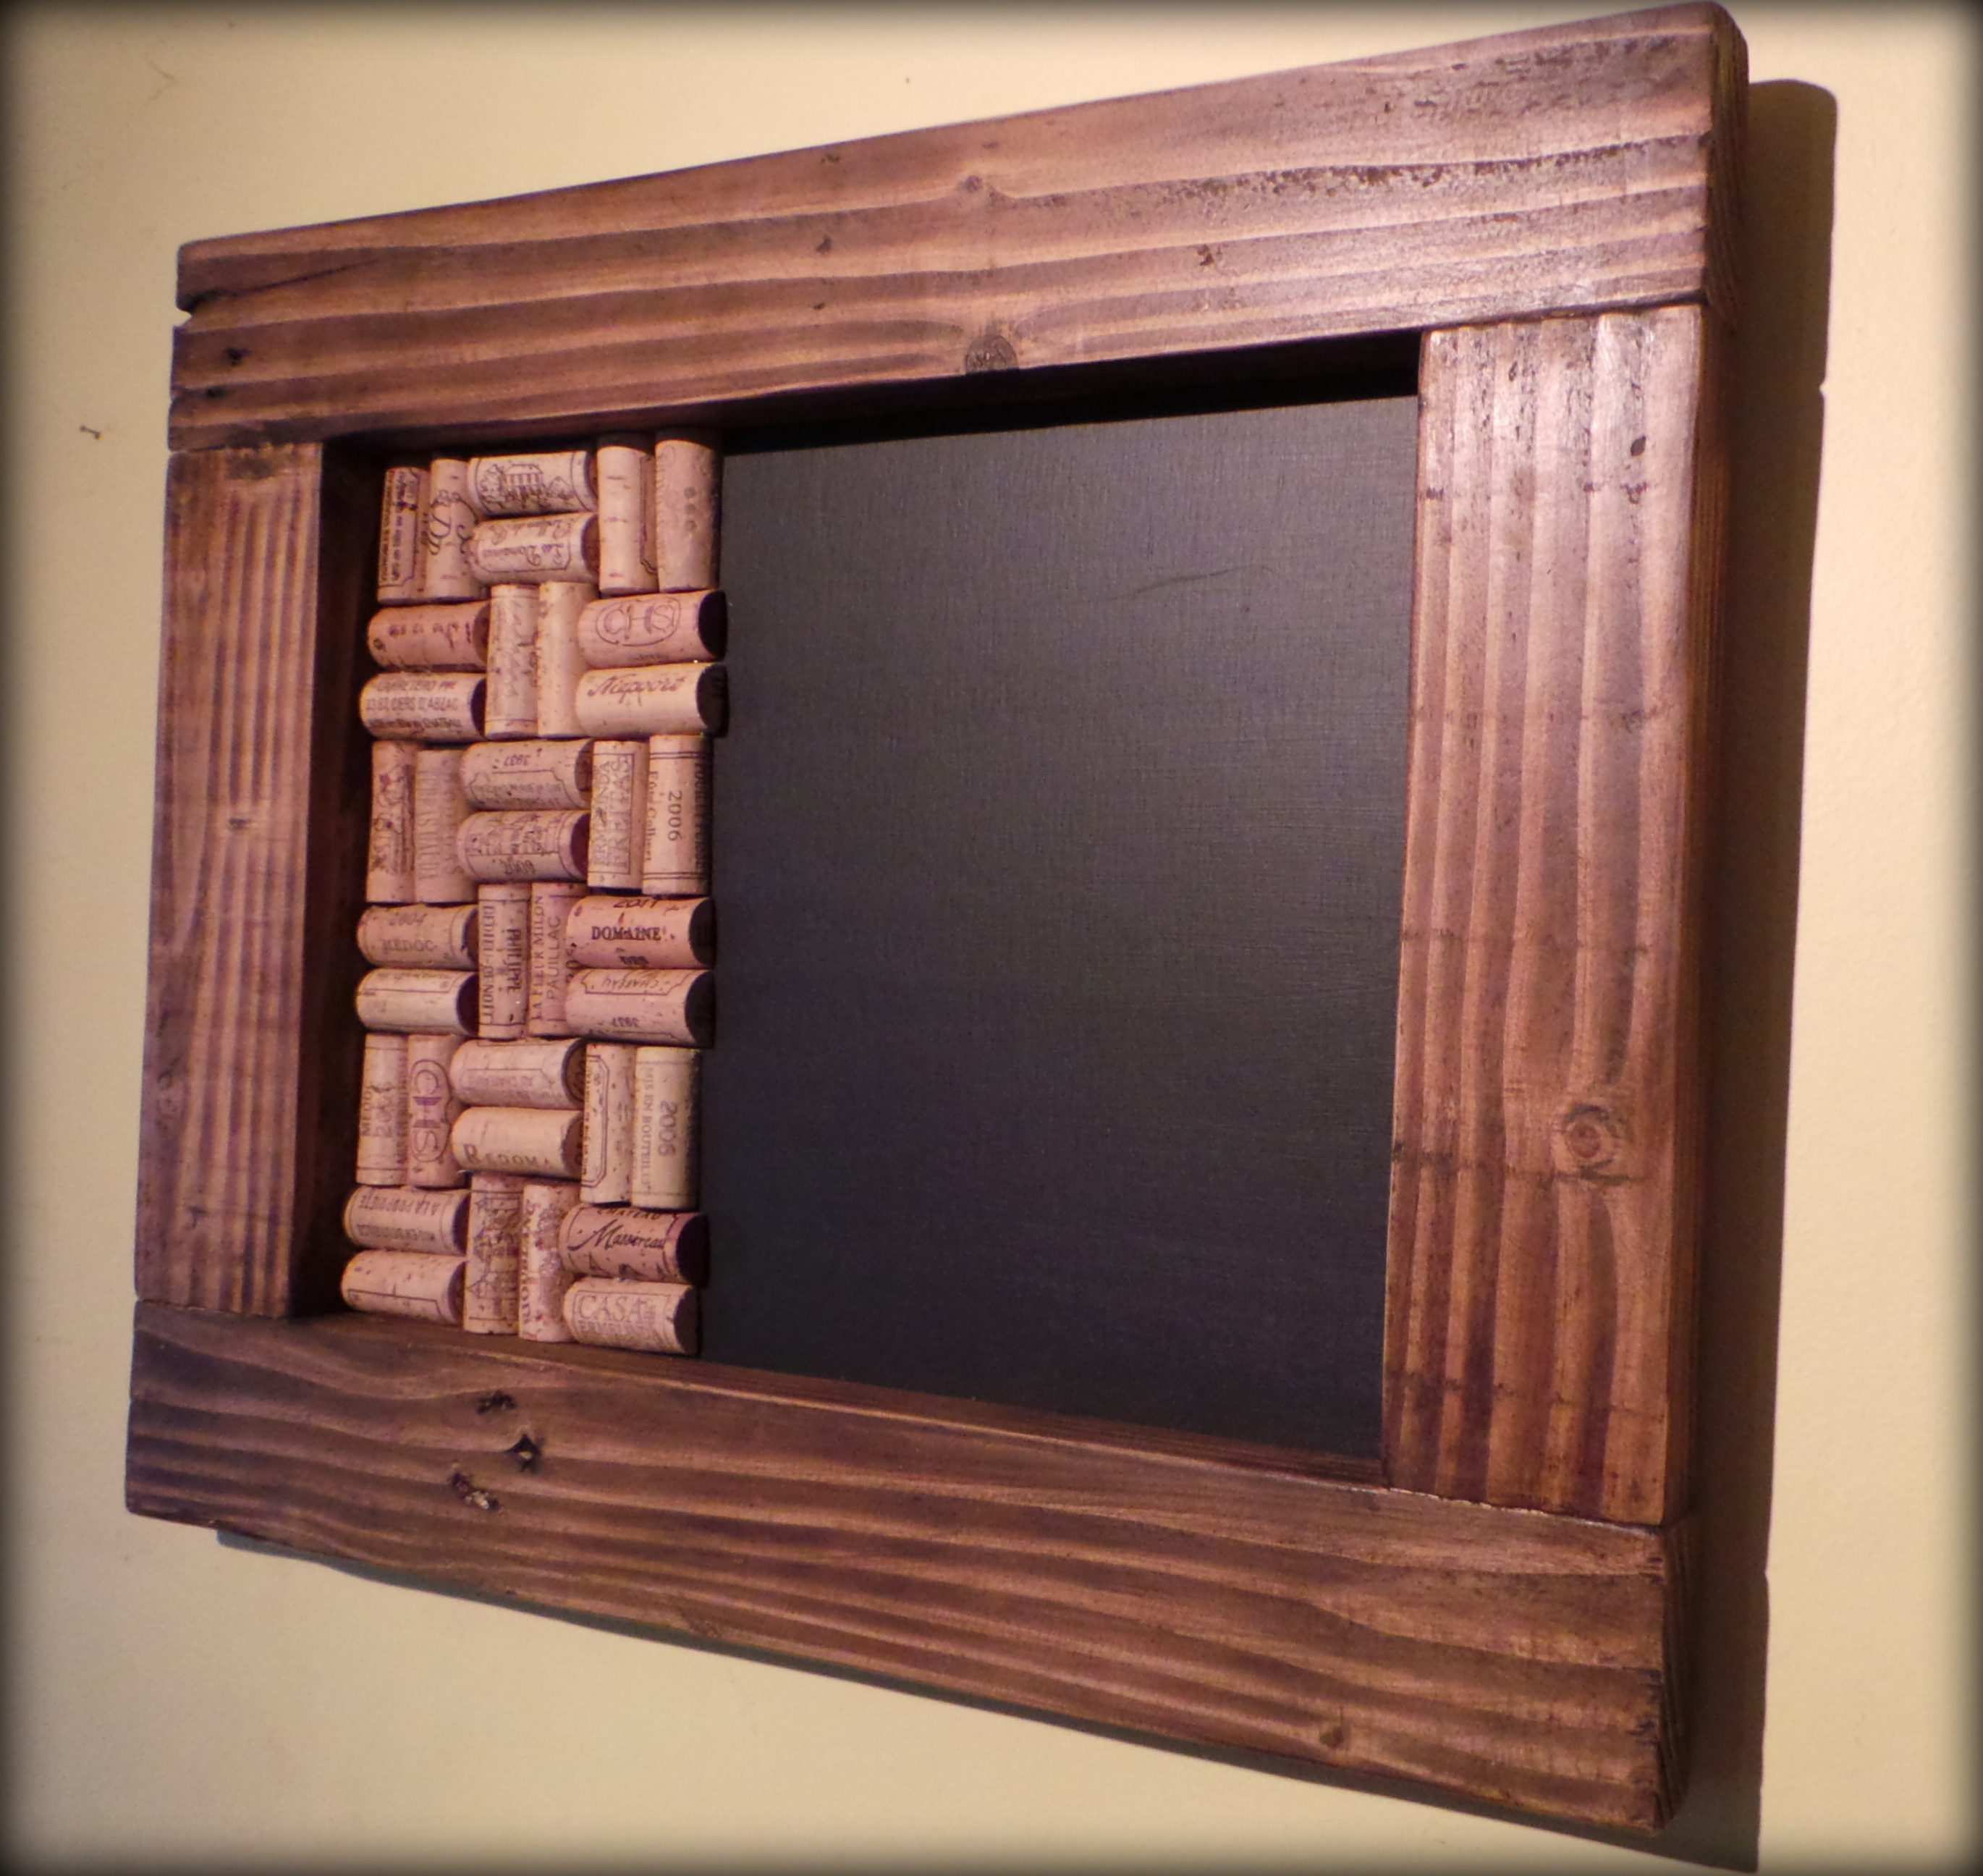 New Memo Boards Made to Order: Blackboards with Wine Cork Pin Boards ...